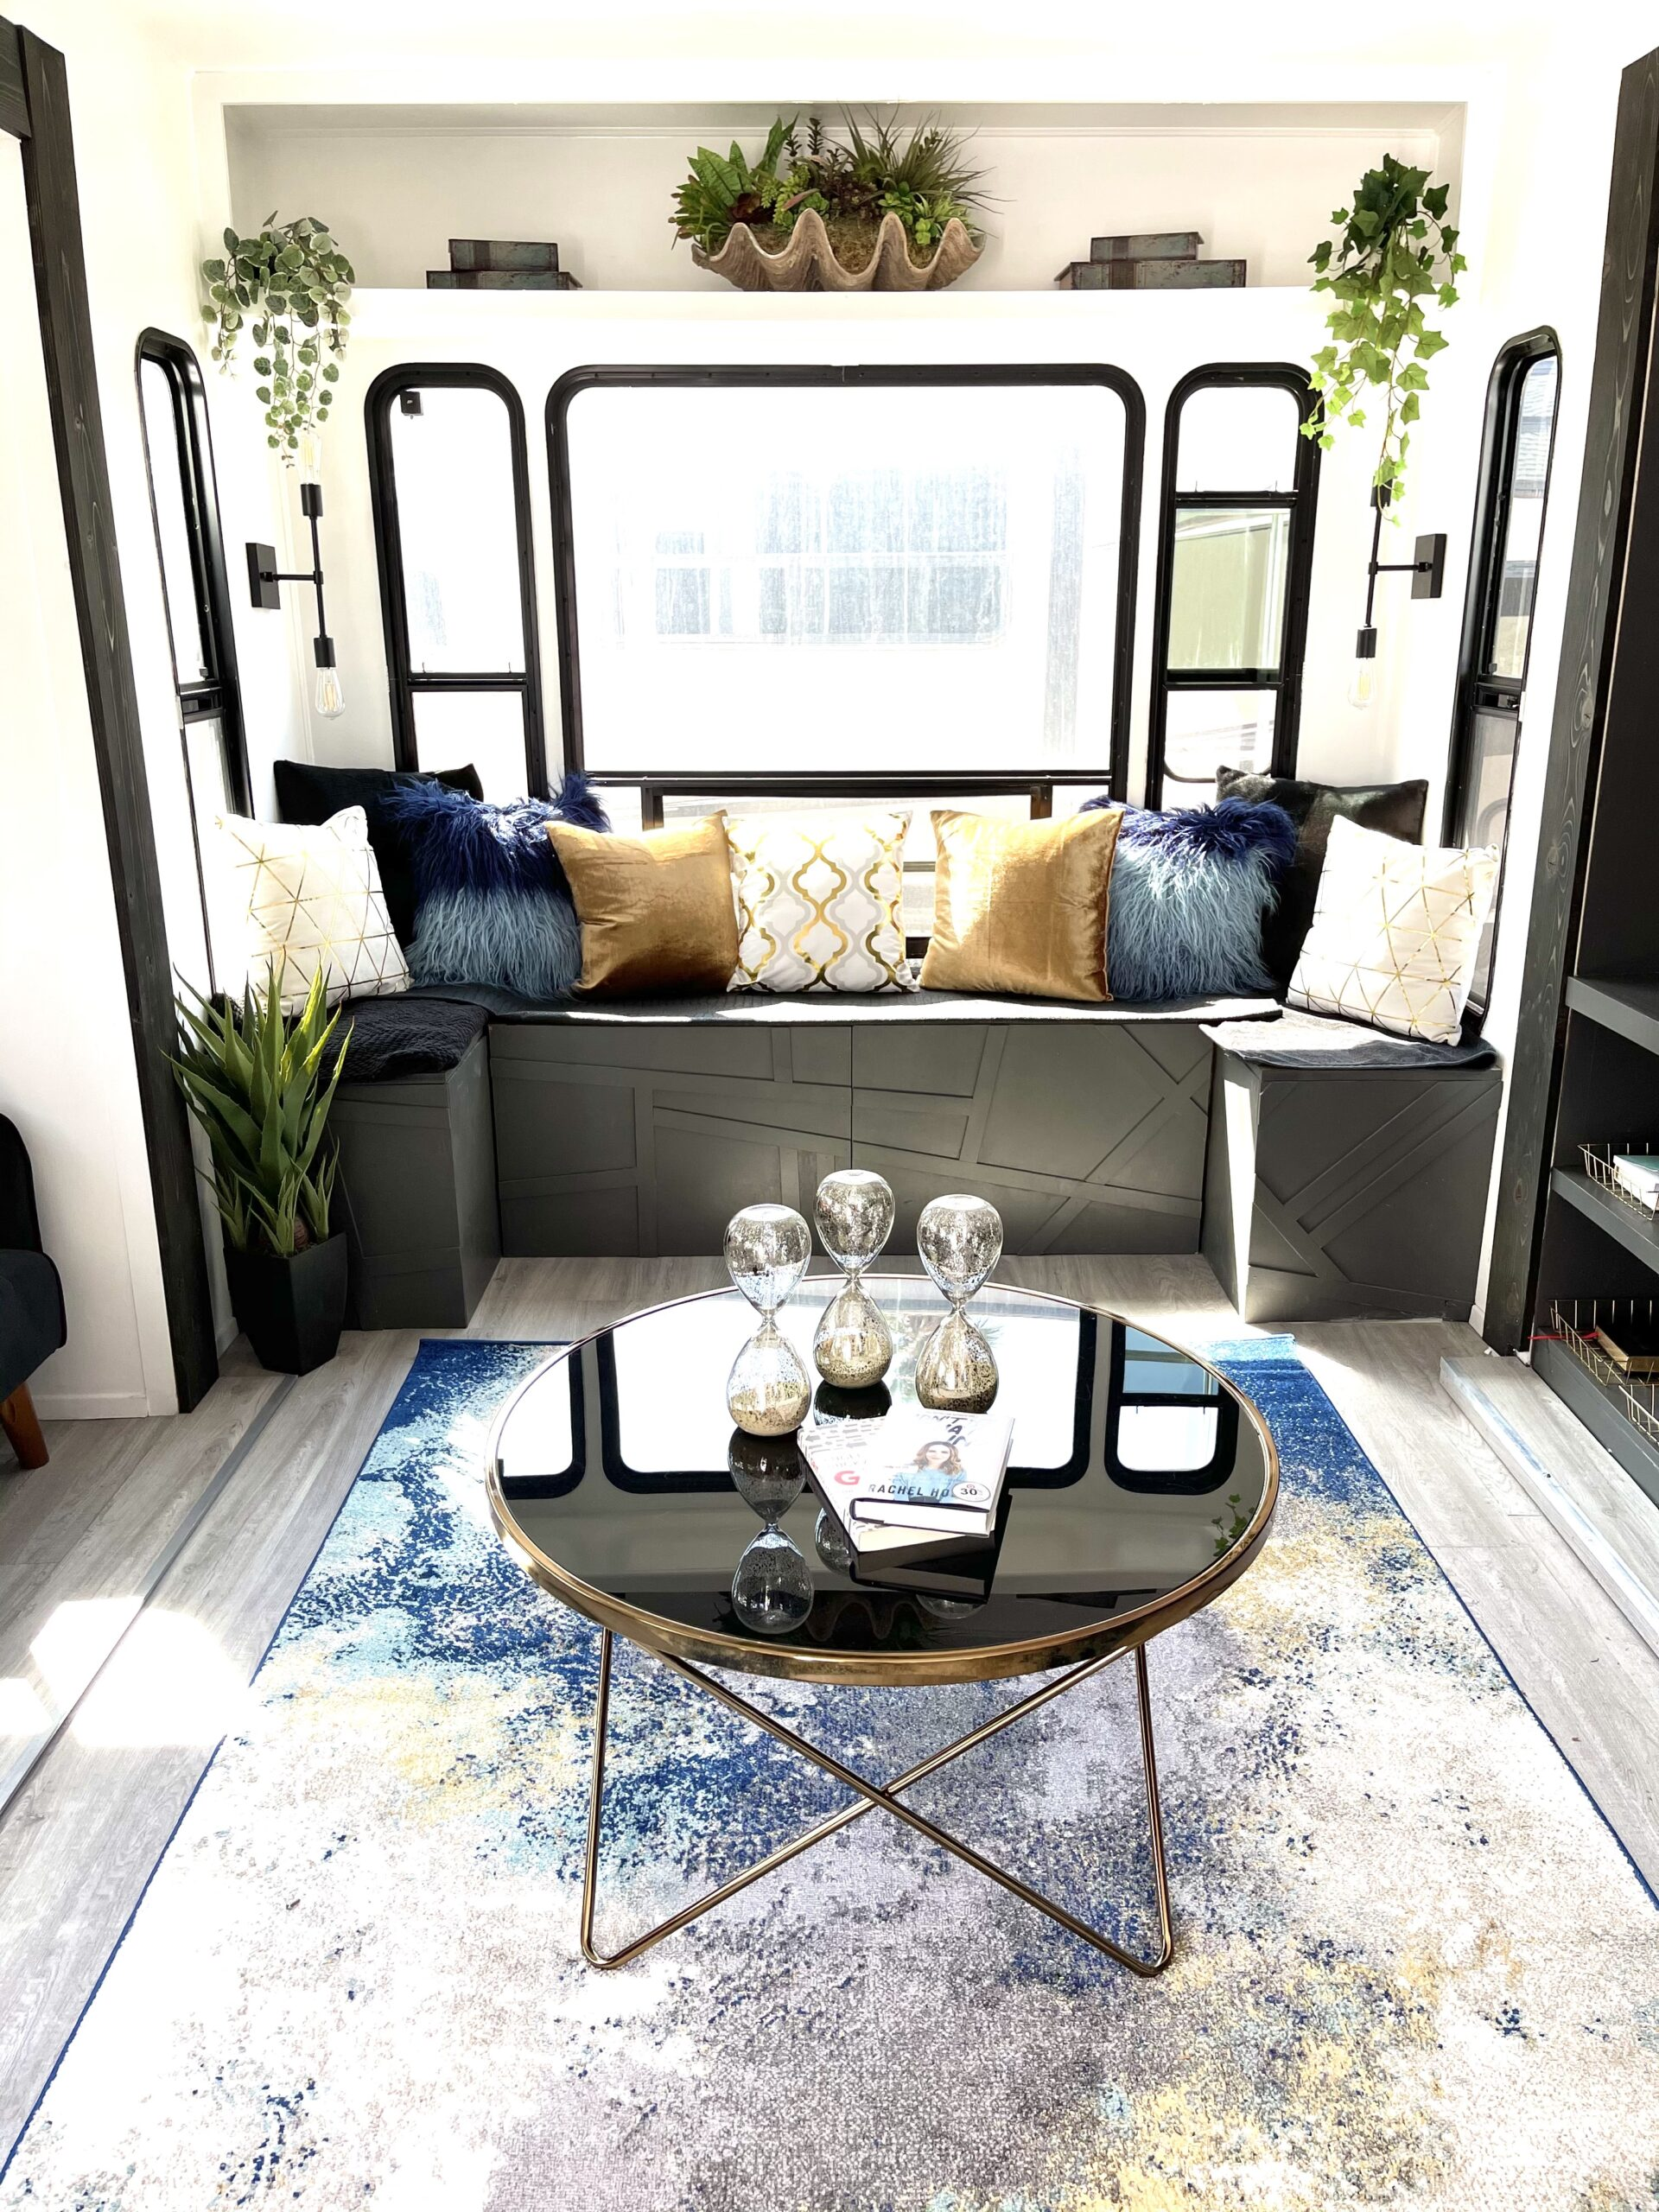 RV Remodel Before And After